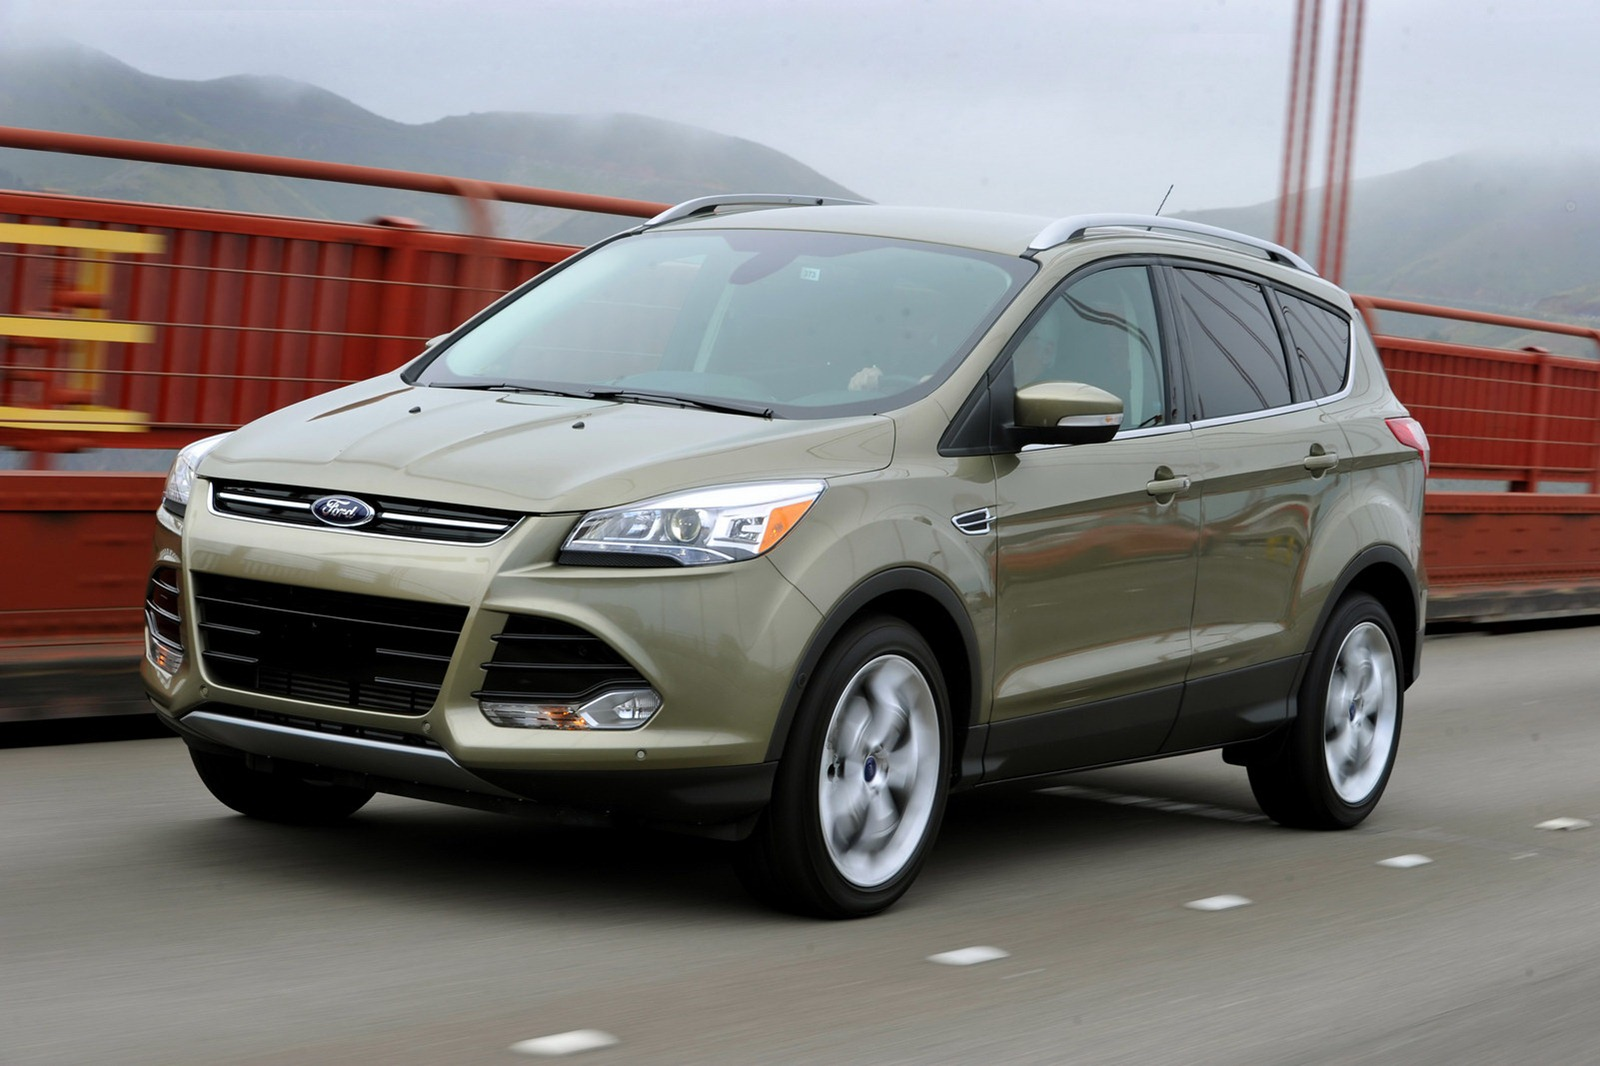 2013-Ford-Escape-8%25255B2%25255D.jpg